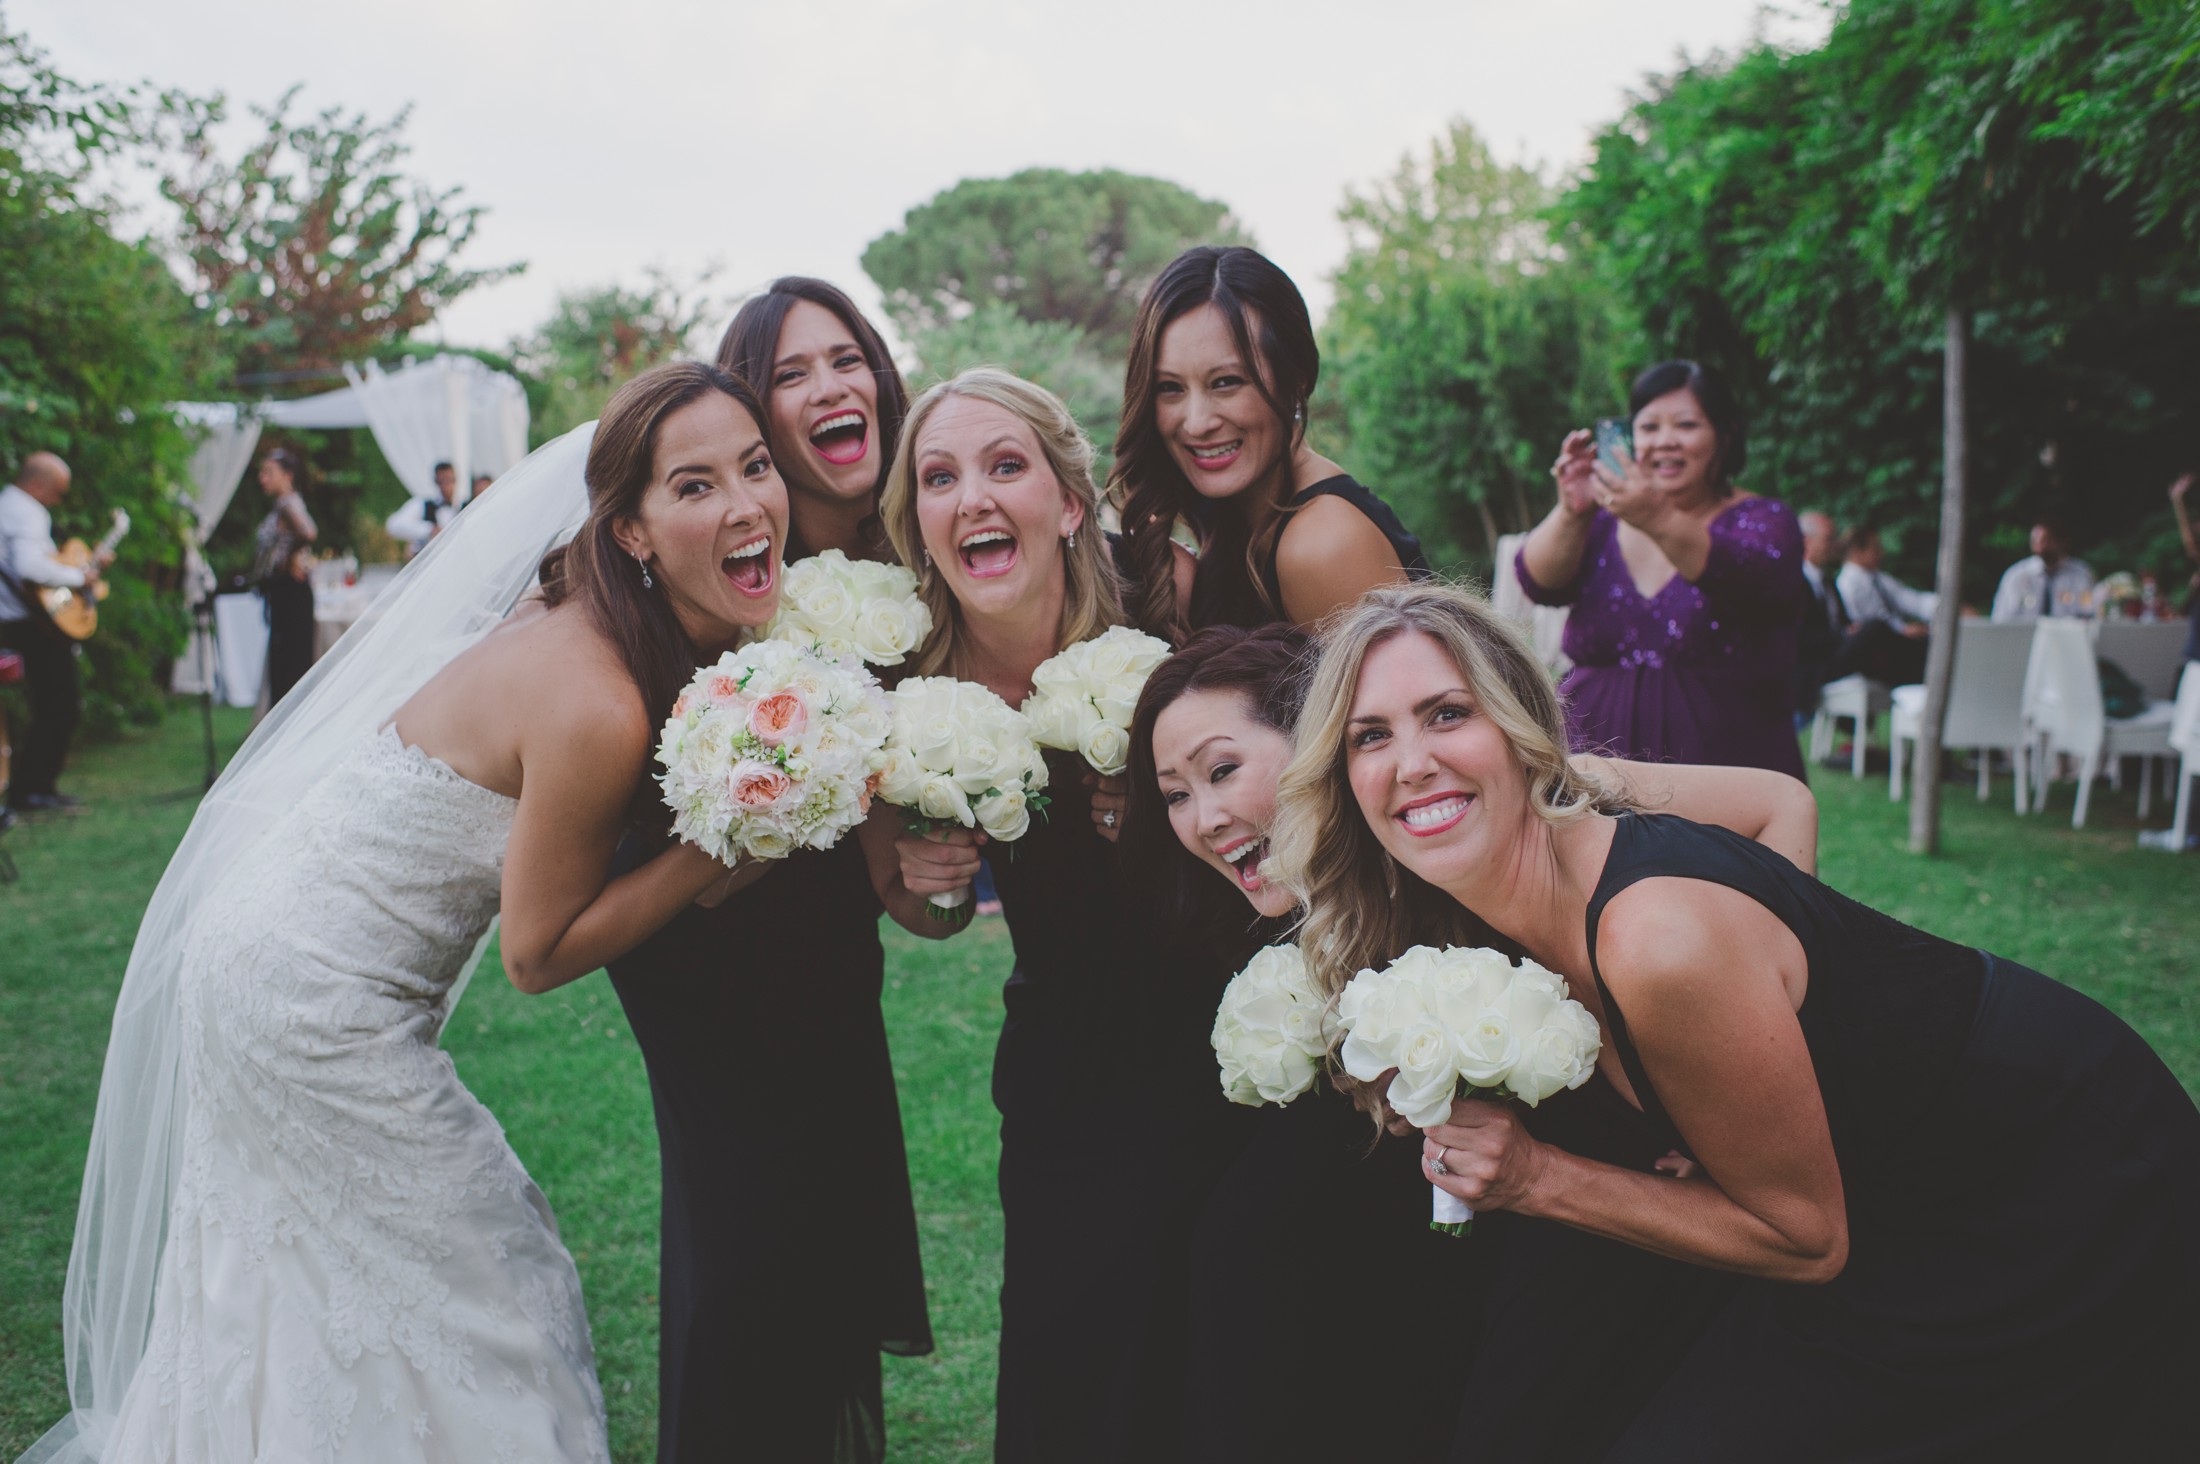 the bride smiling with the bridesmaids